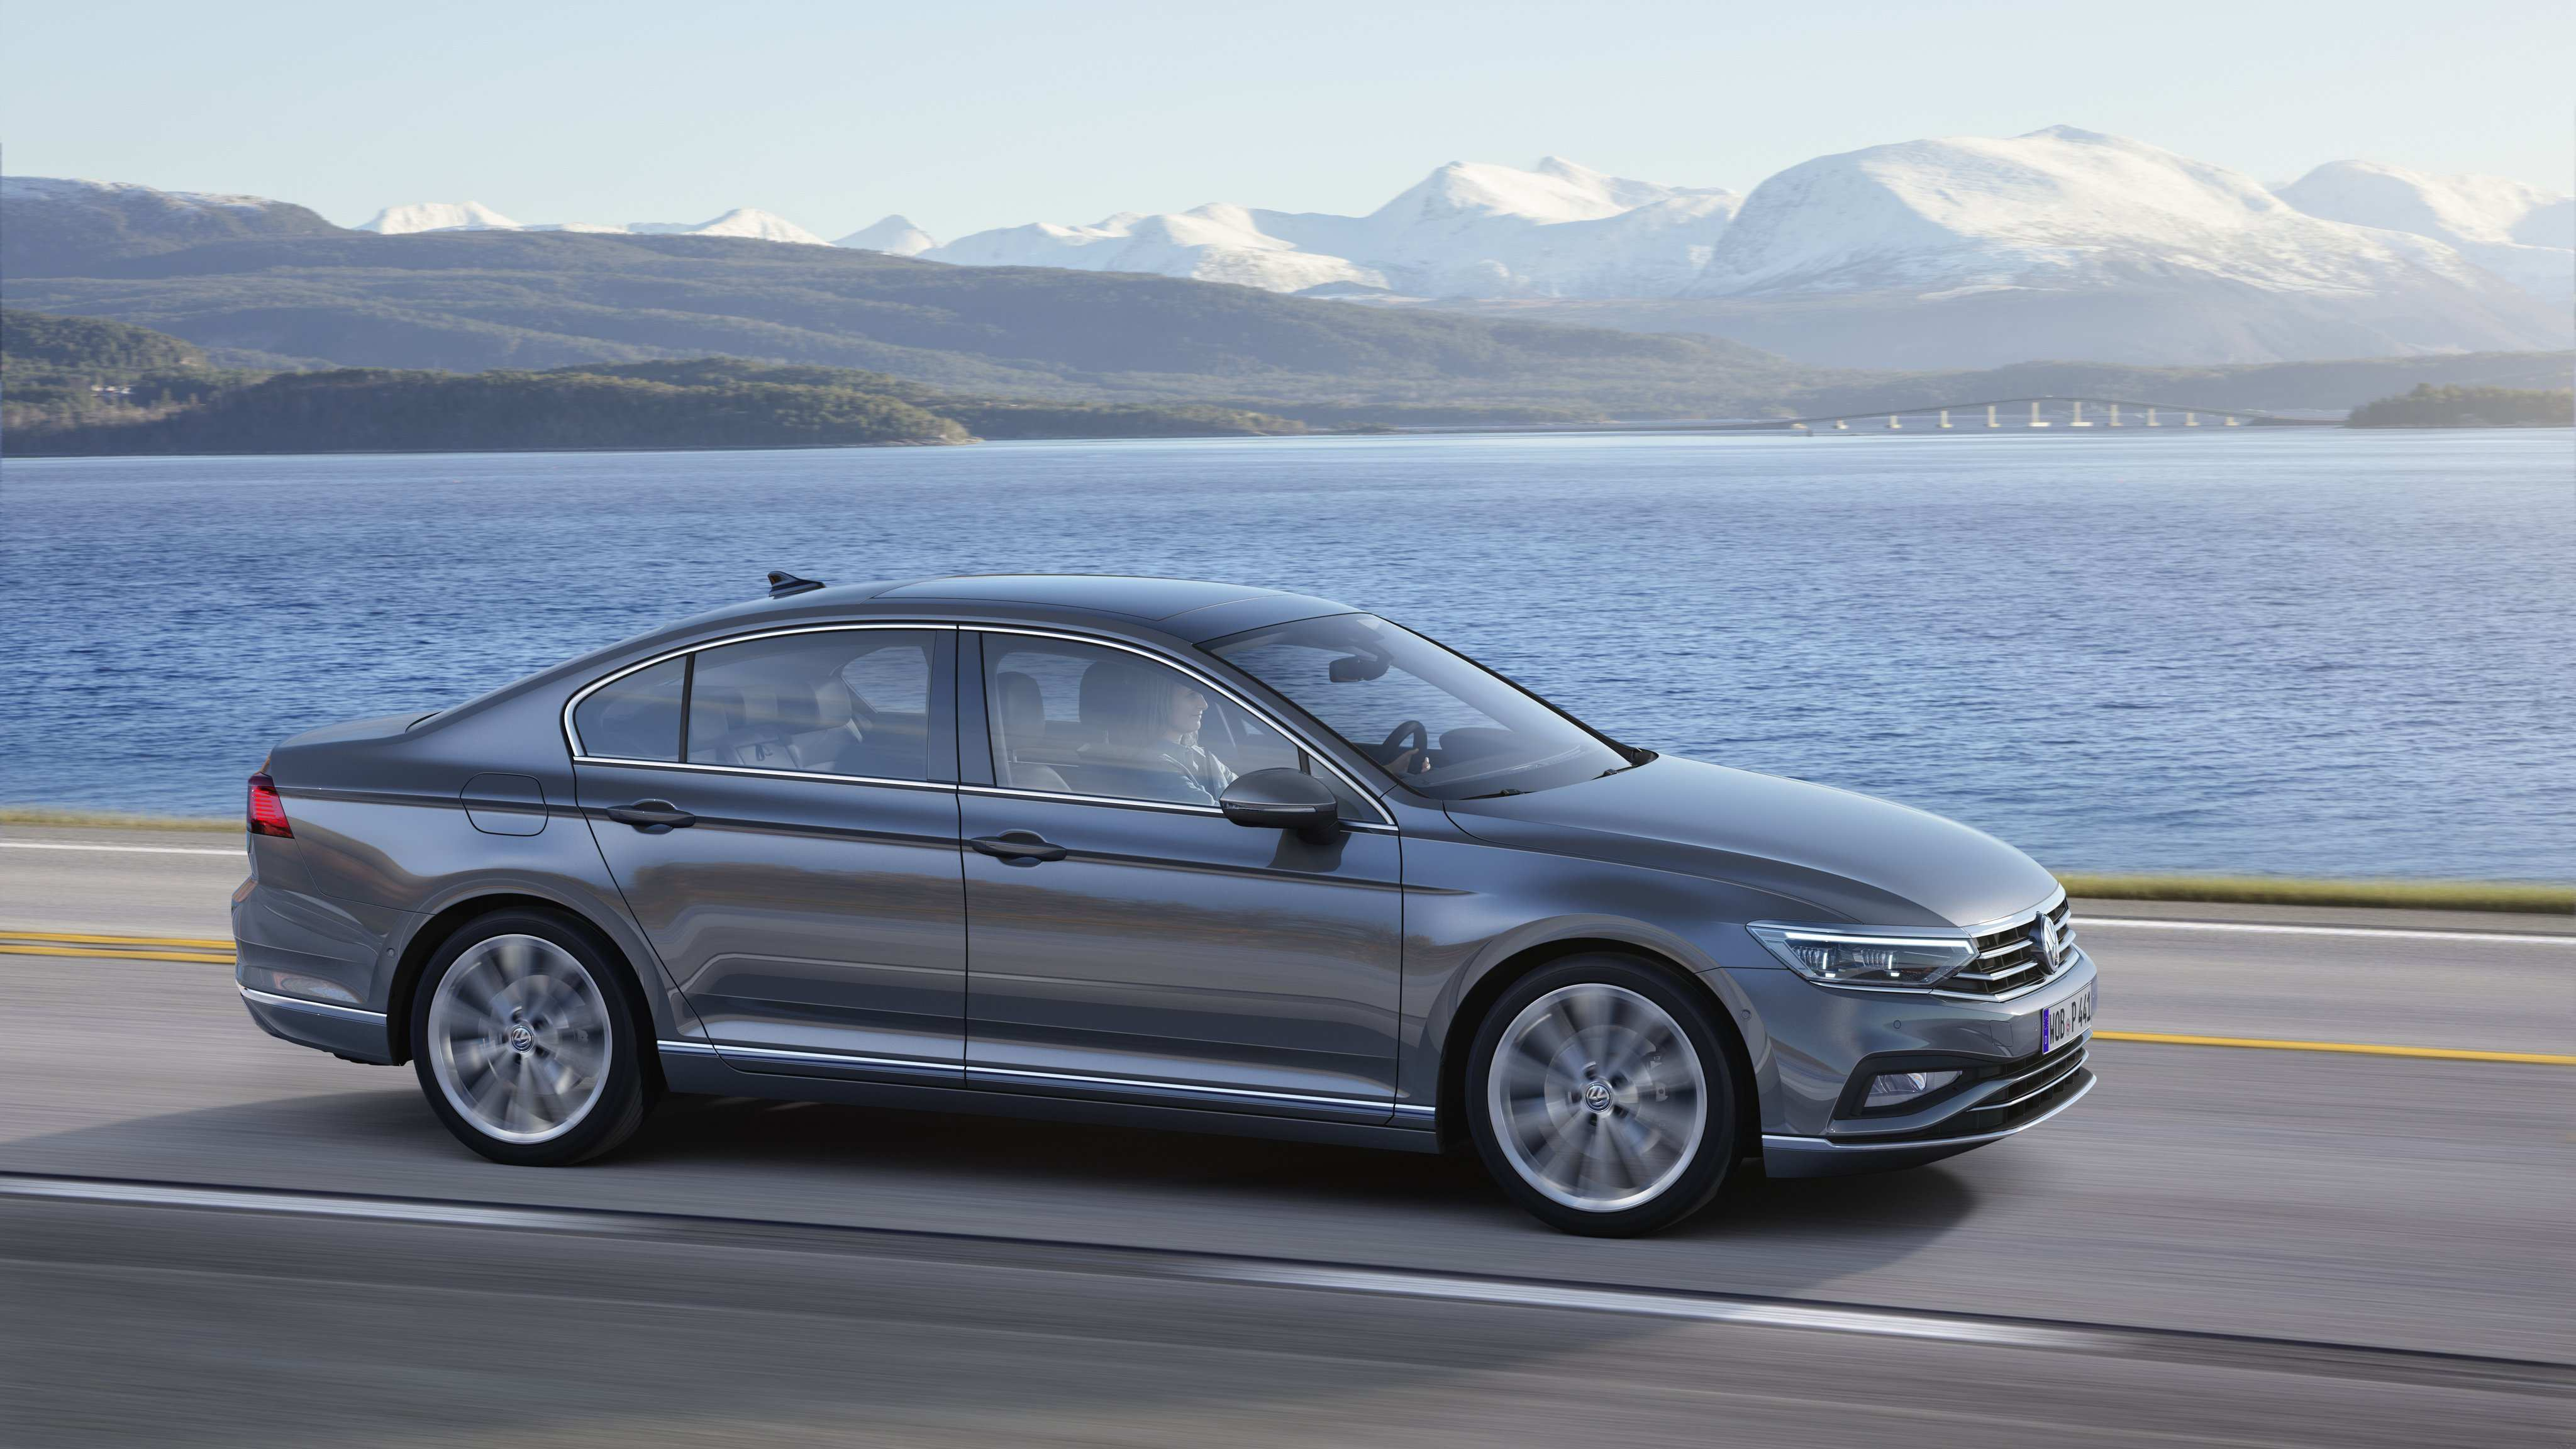 95 All New Volkswagen Passat 2020 Europe Redesign And Review